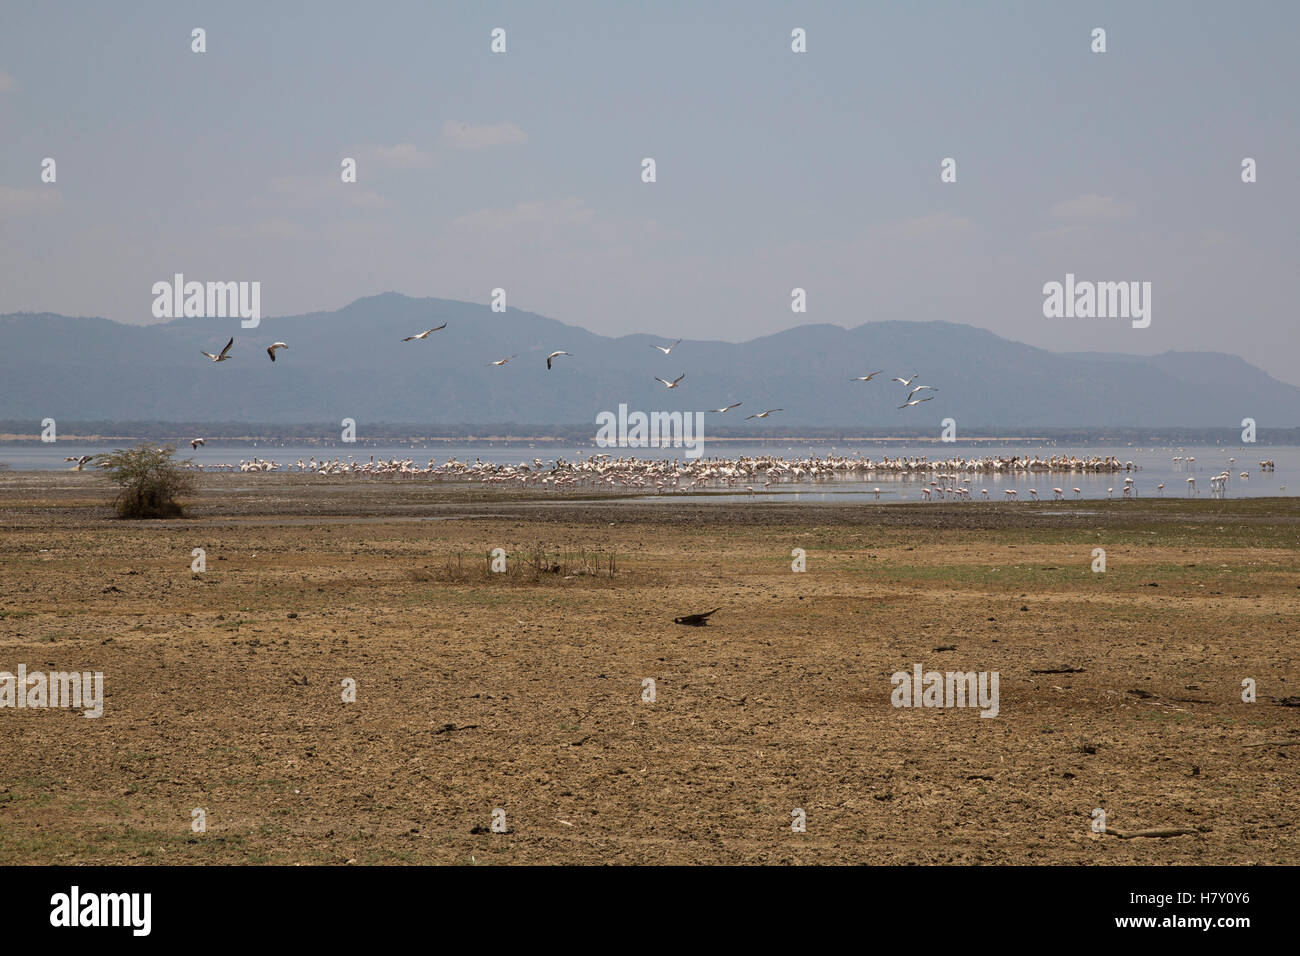 Great white pelicans, Greater and Lesser Flamingo at Lake Manyara, Tanzania - Stock Image